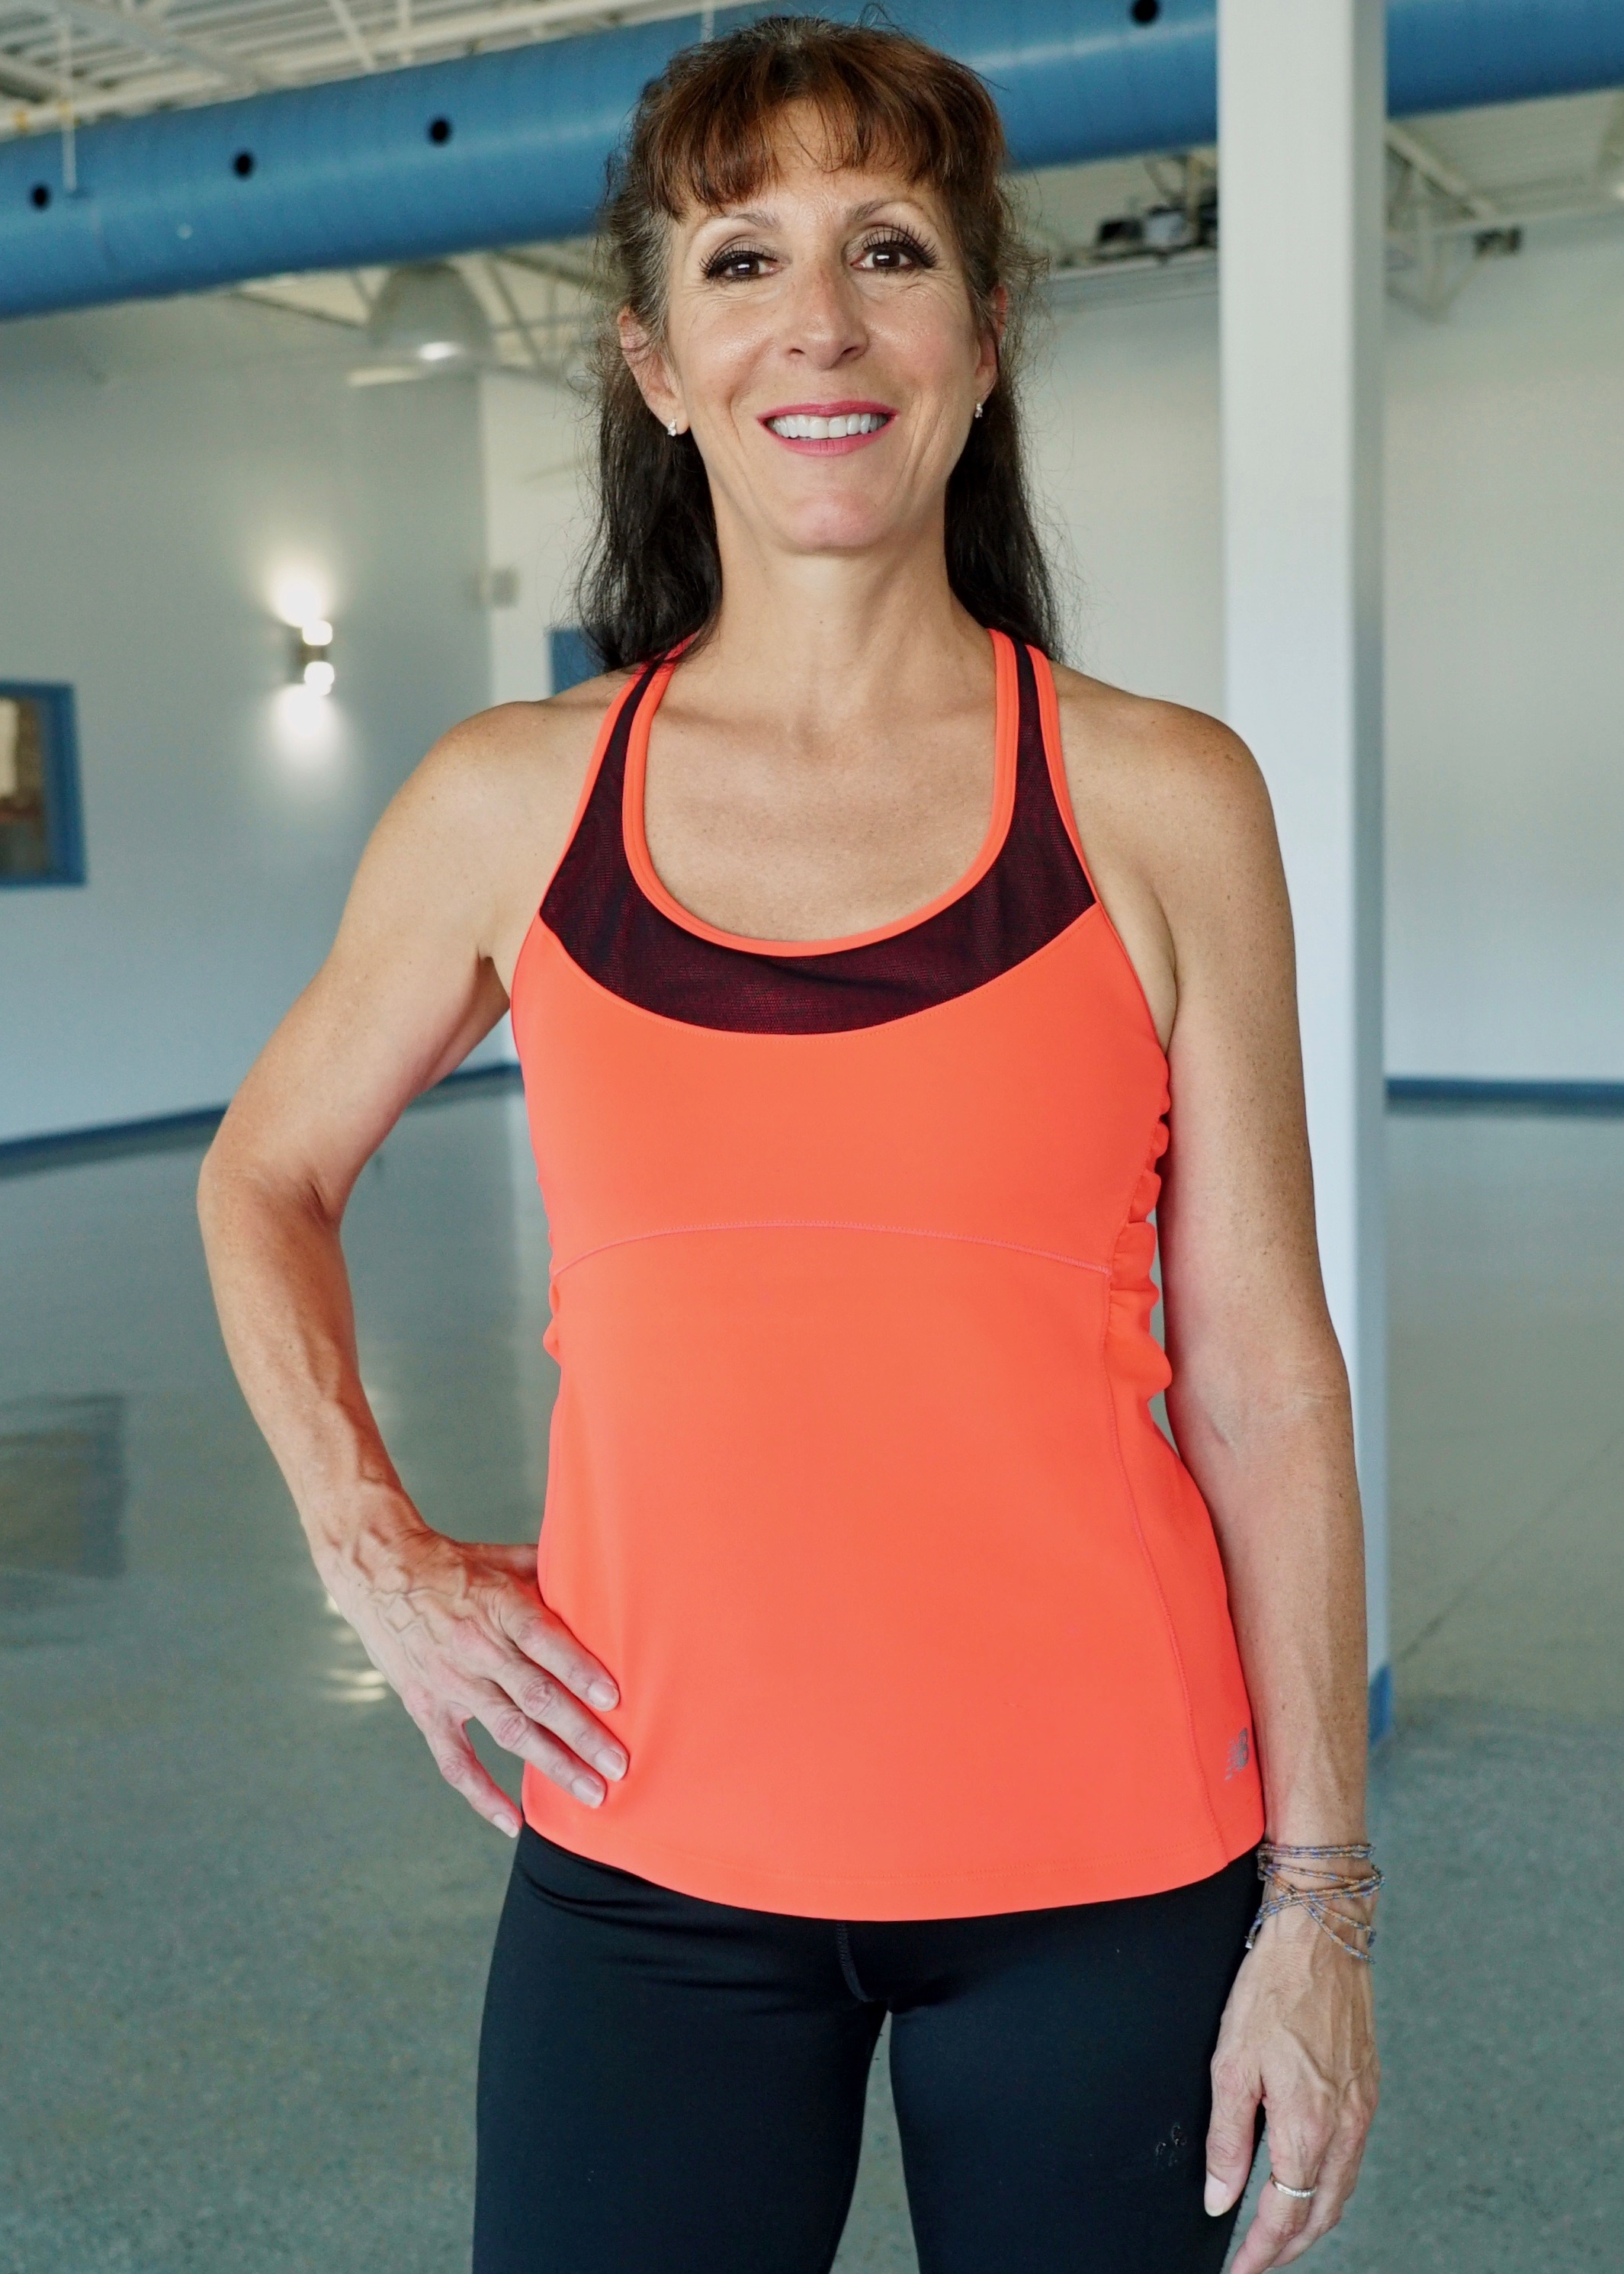 Jeanne Paule Extensa Fitness instructor